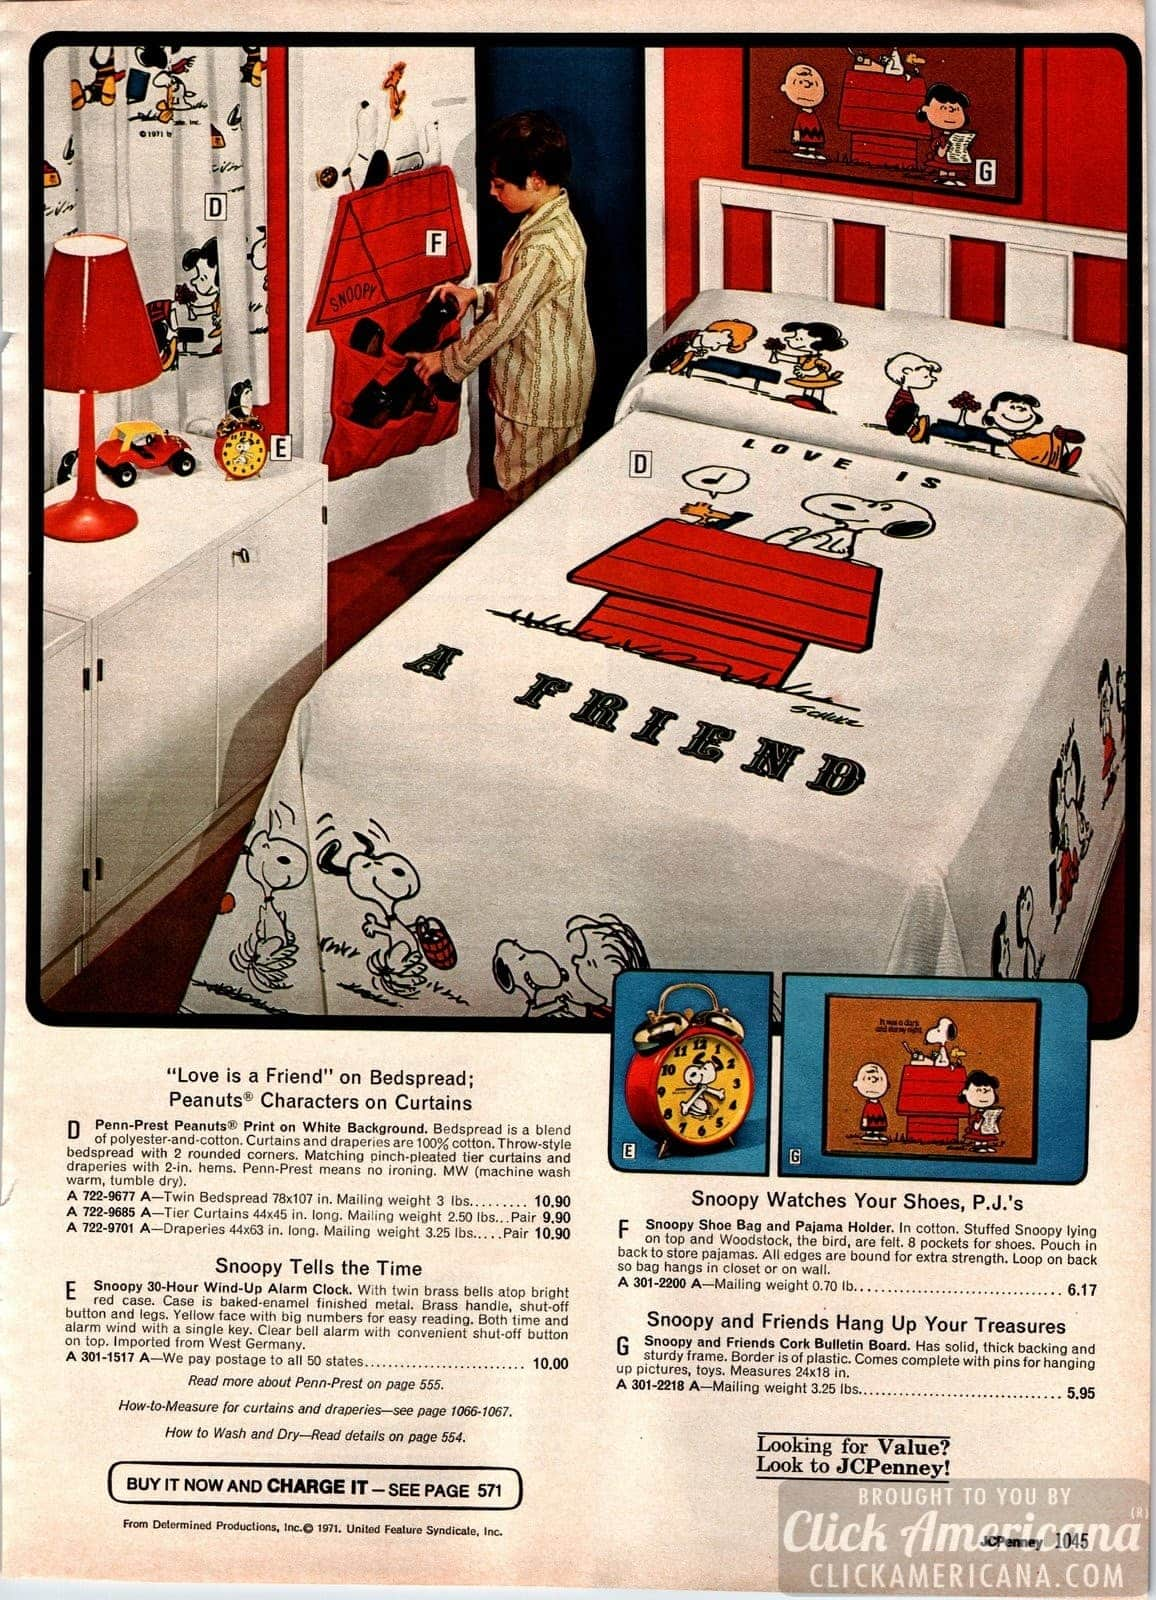 Snoopy & Peanuts 'Love is a Friend' bedspread and bedroom decor